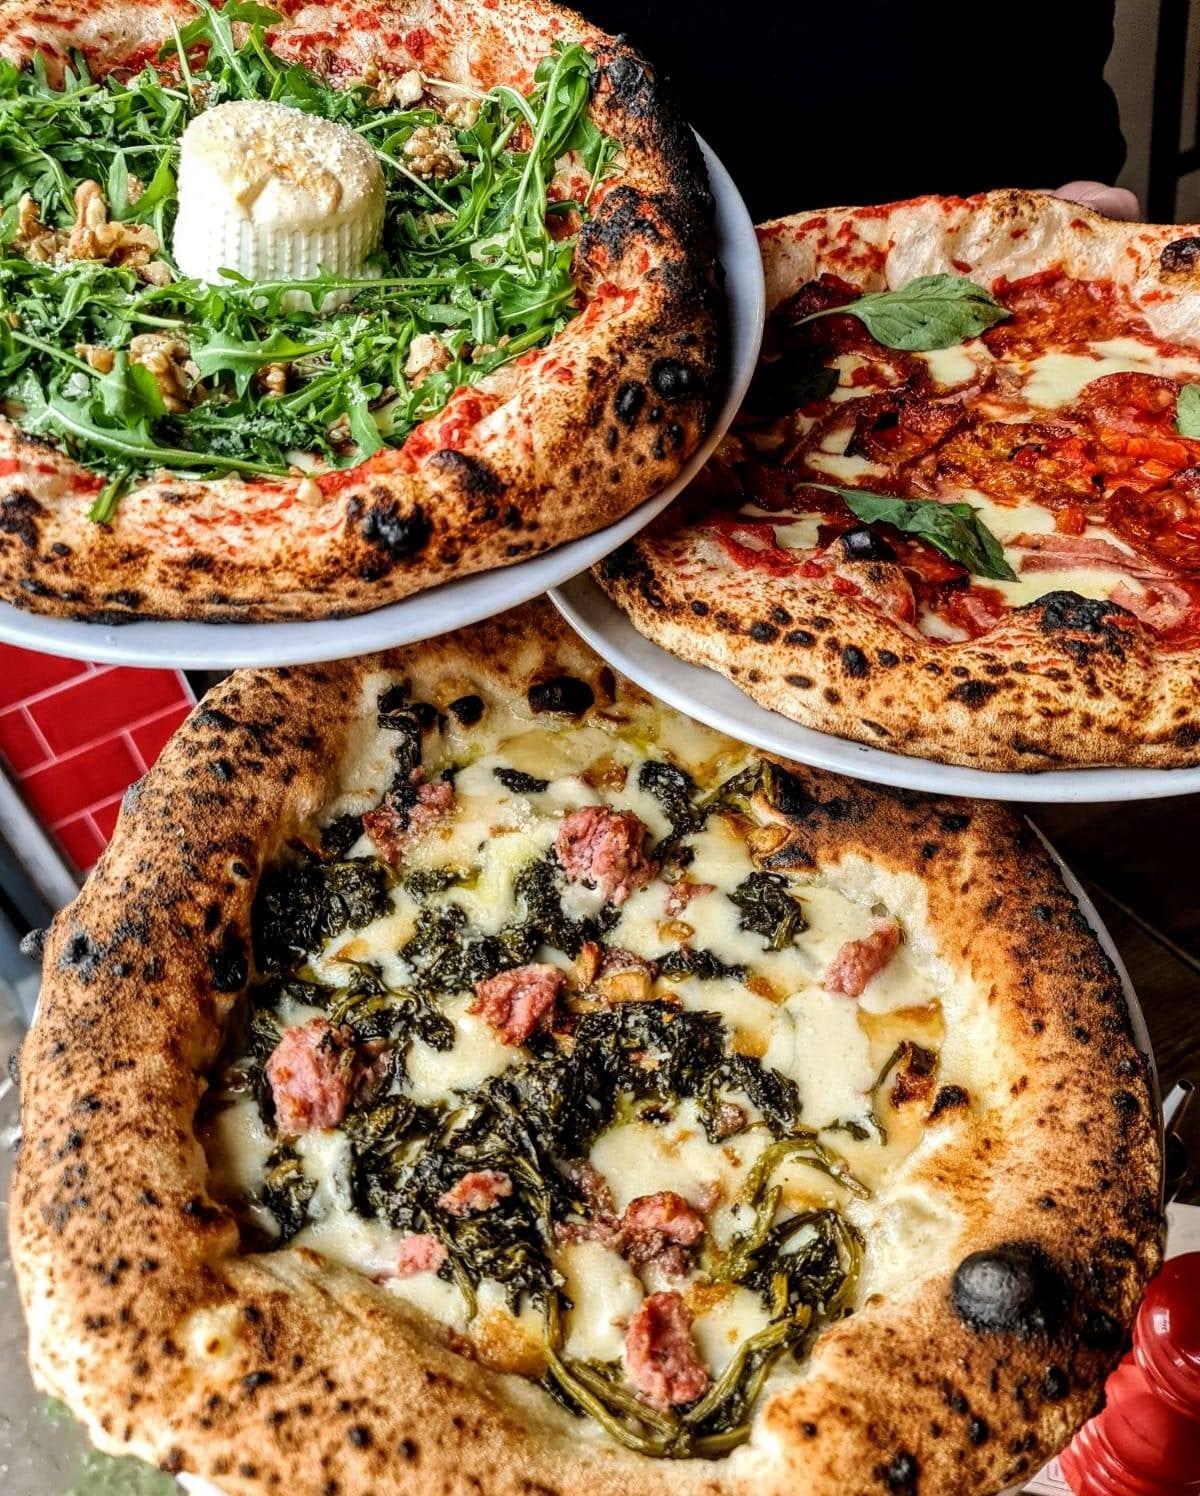 Manchester's favourite takeaway options have been revealed – and pizza claims the top spot, The Manc